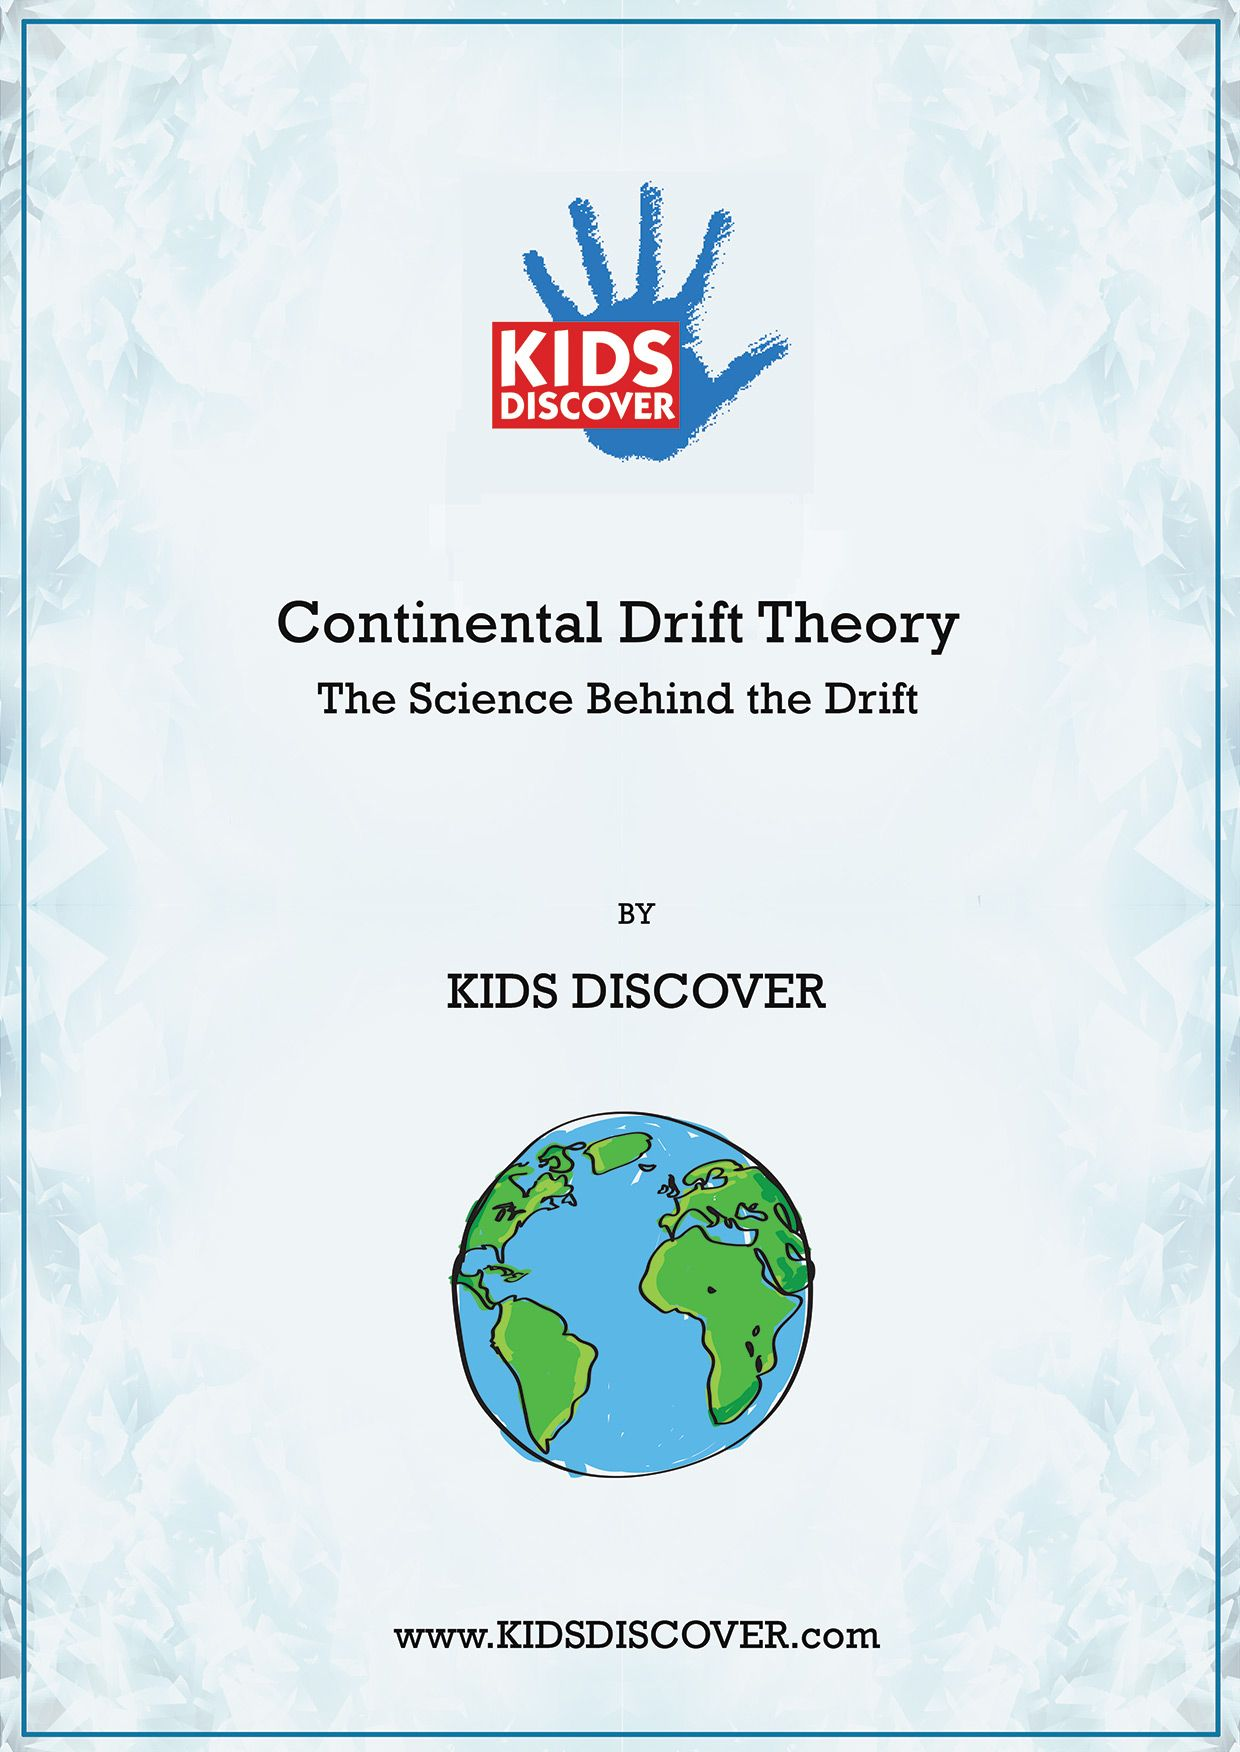 Kids Discover Continental Drift Theory Free Packet To